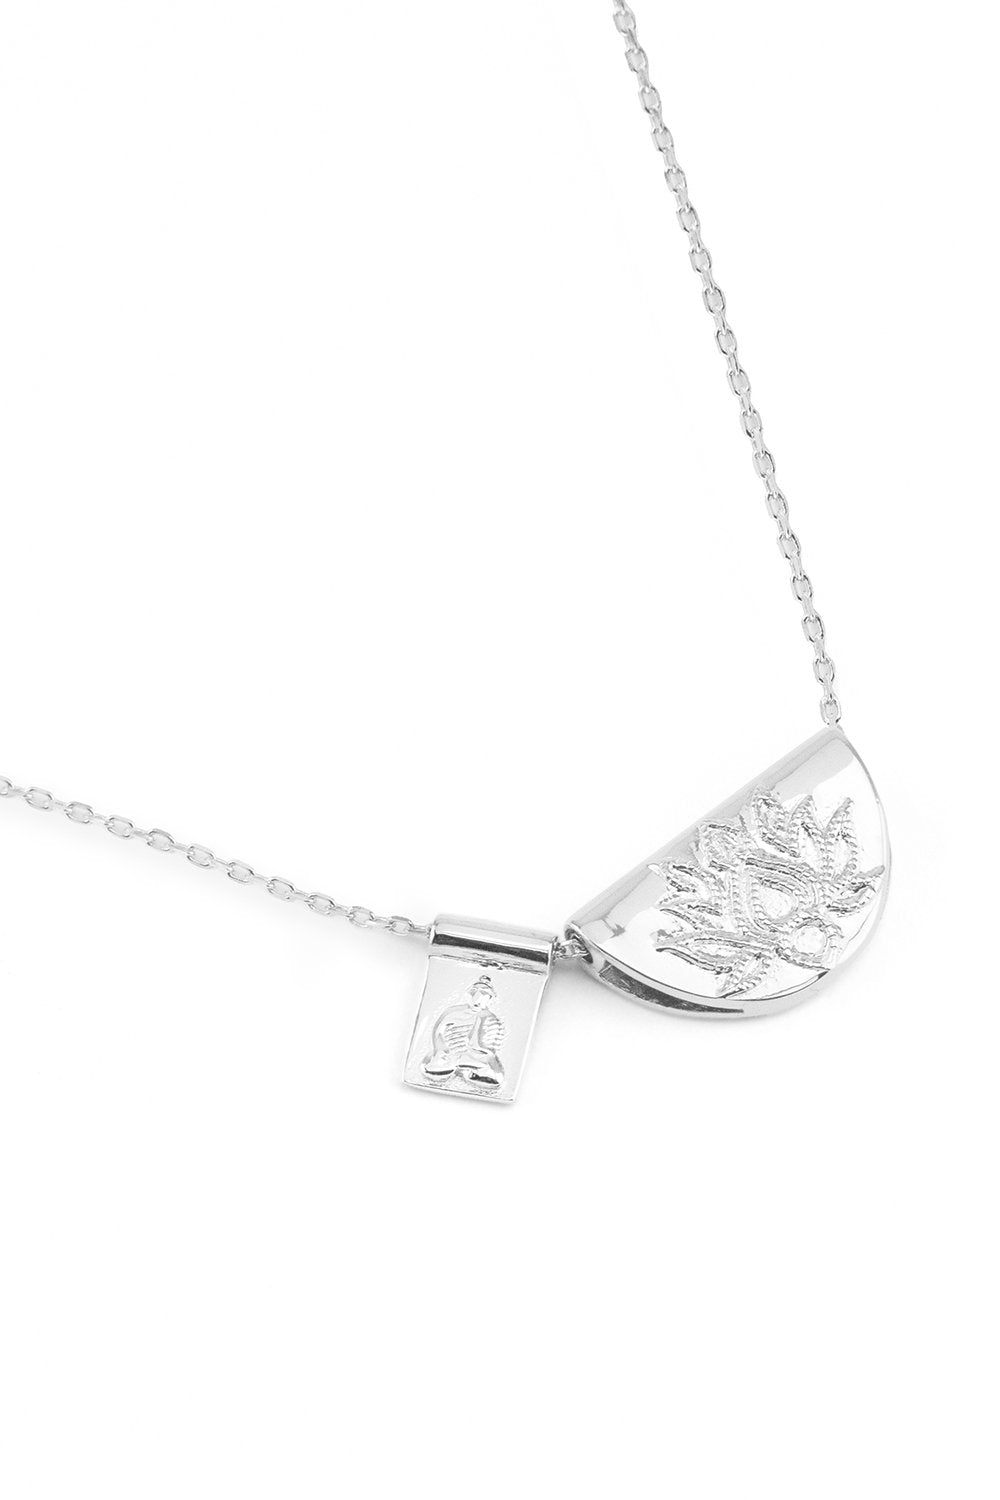 BY CHARLOTTE LOTUS SHORT NECKLACE SILVER PLATED